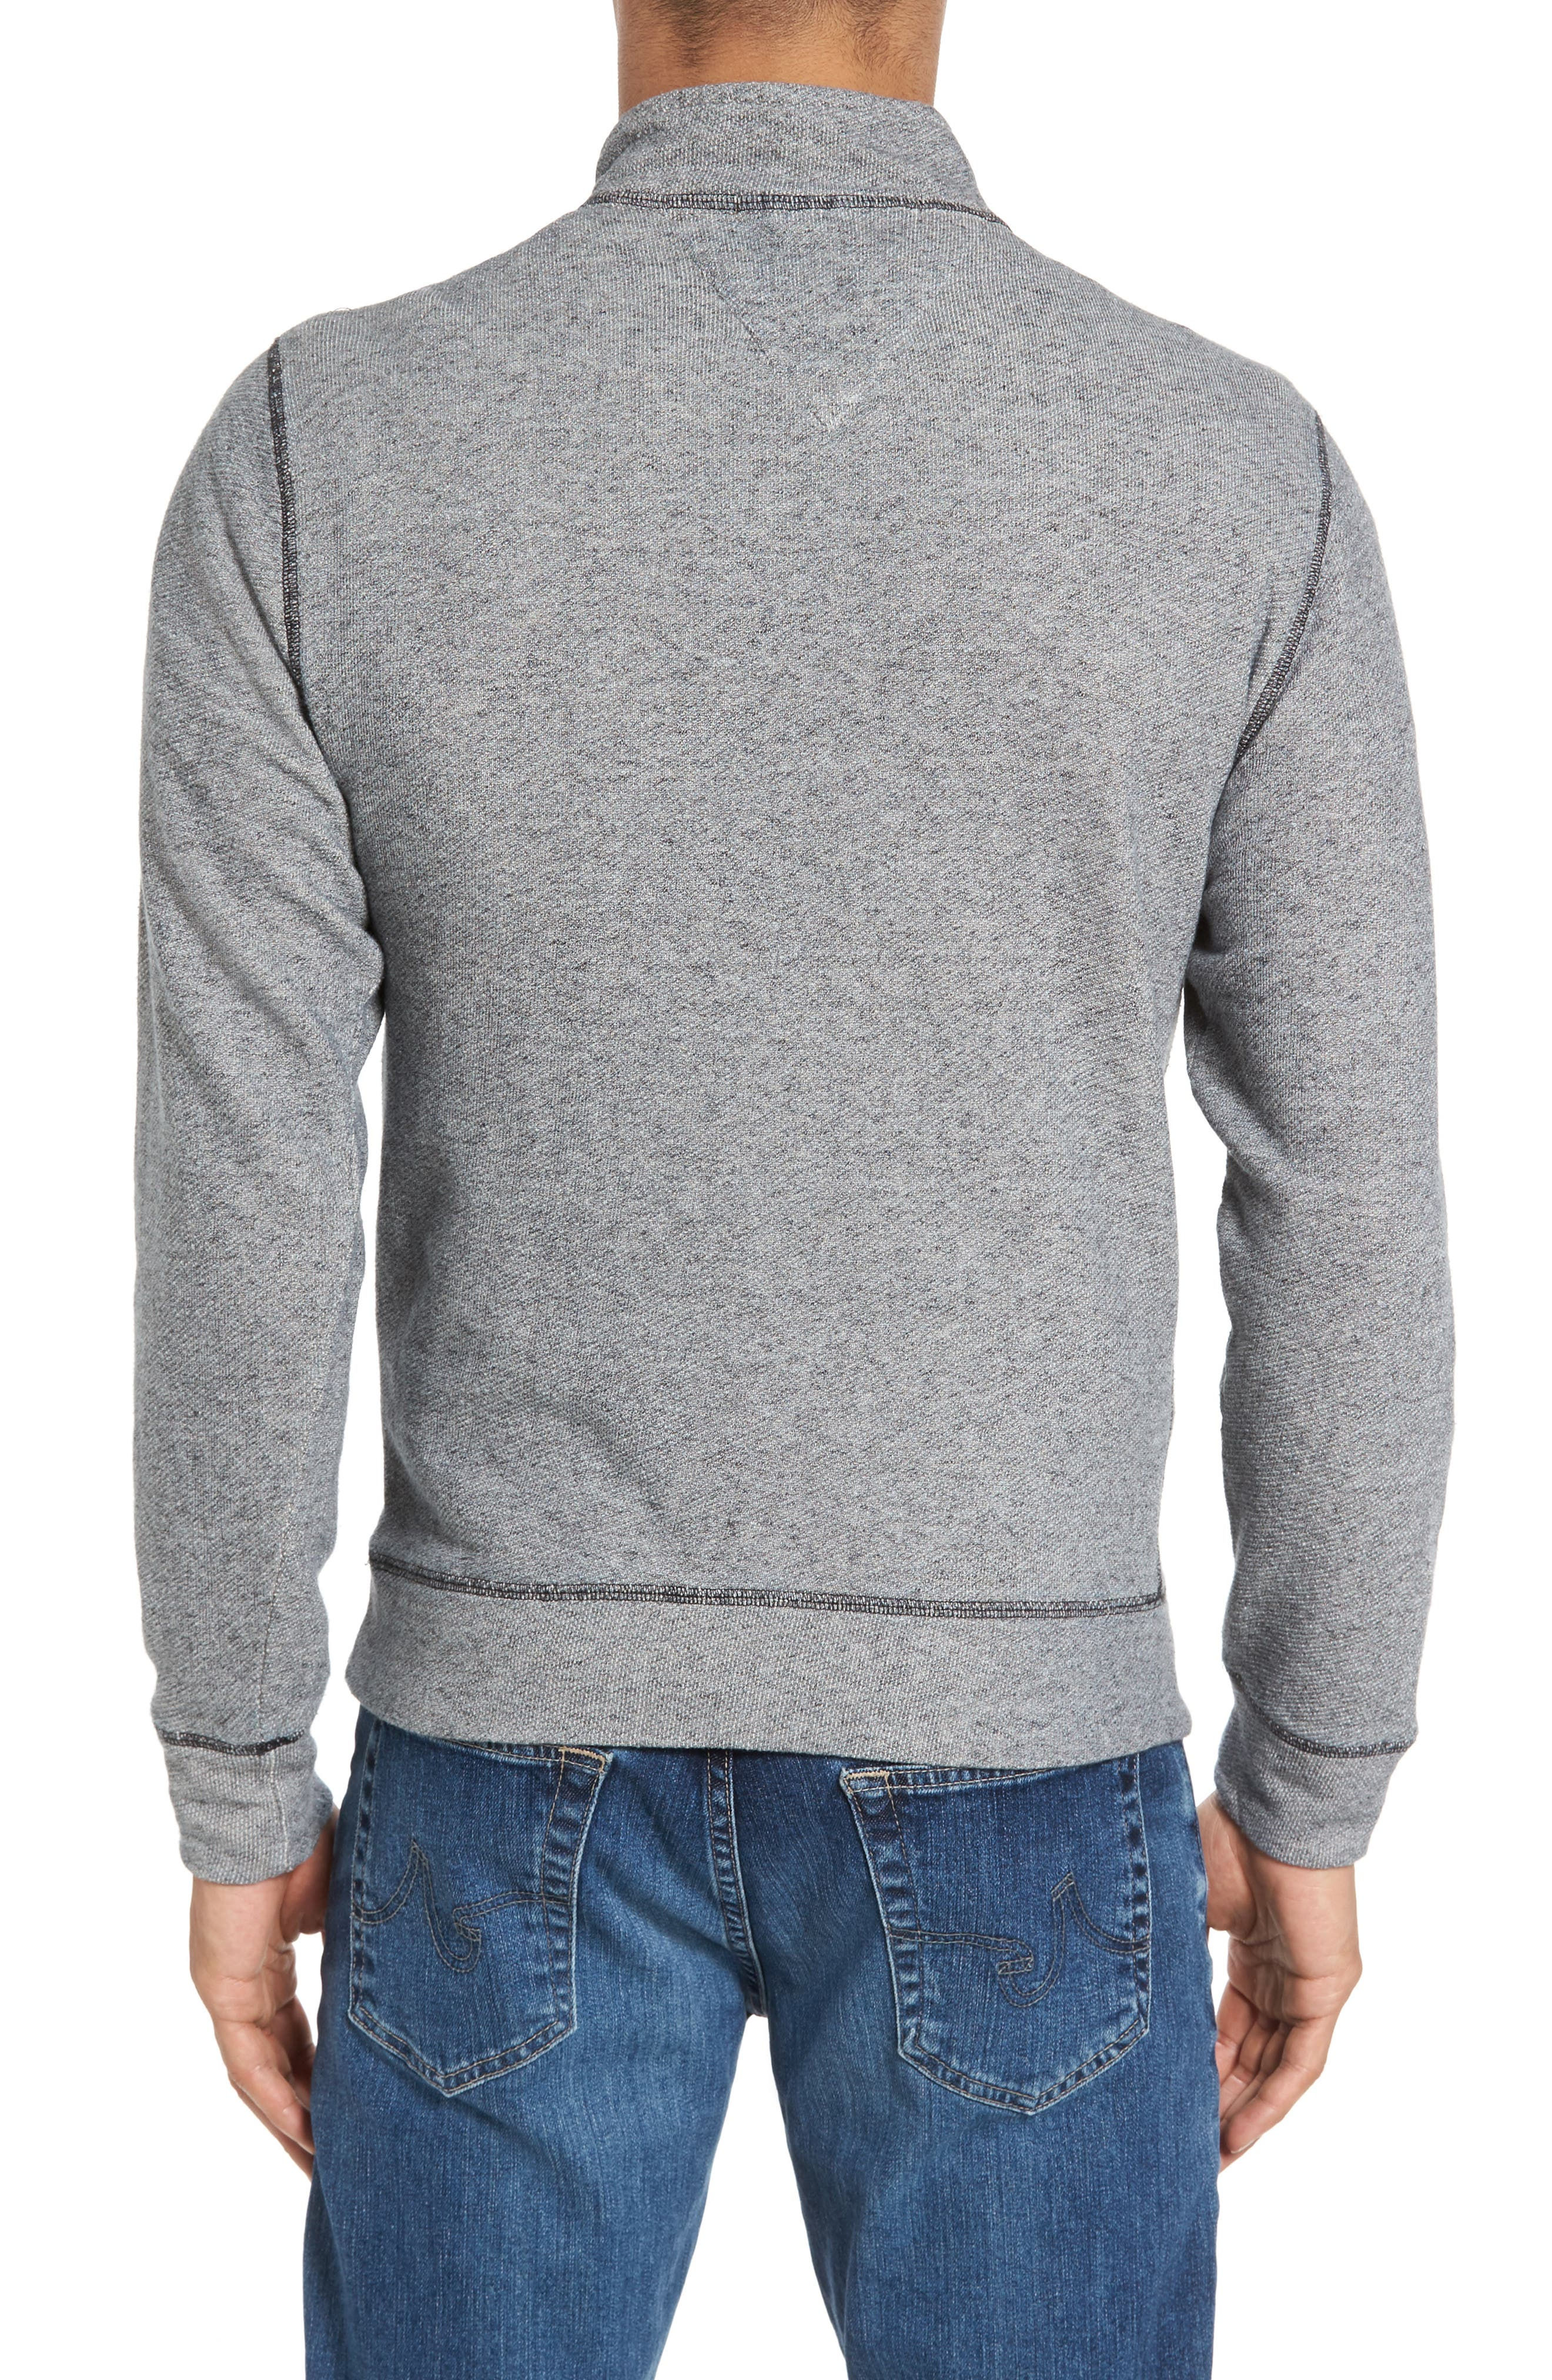 French Terry Zip Cardigan,                             Alternate thumbnail 2, color,                             020